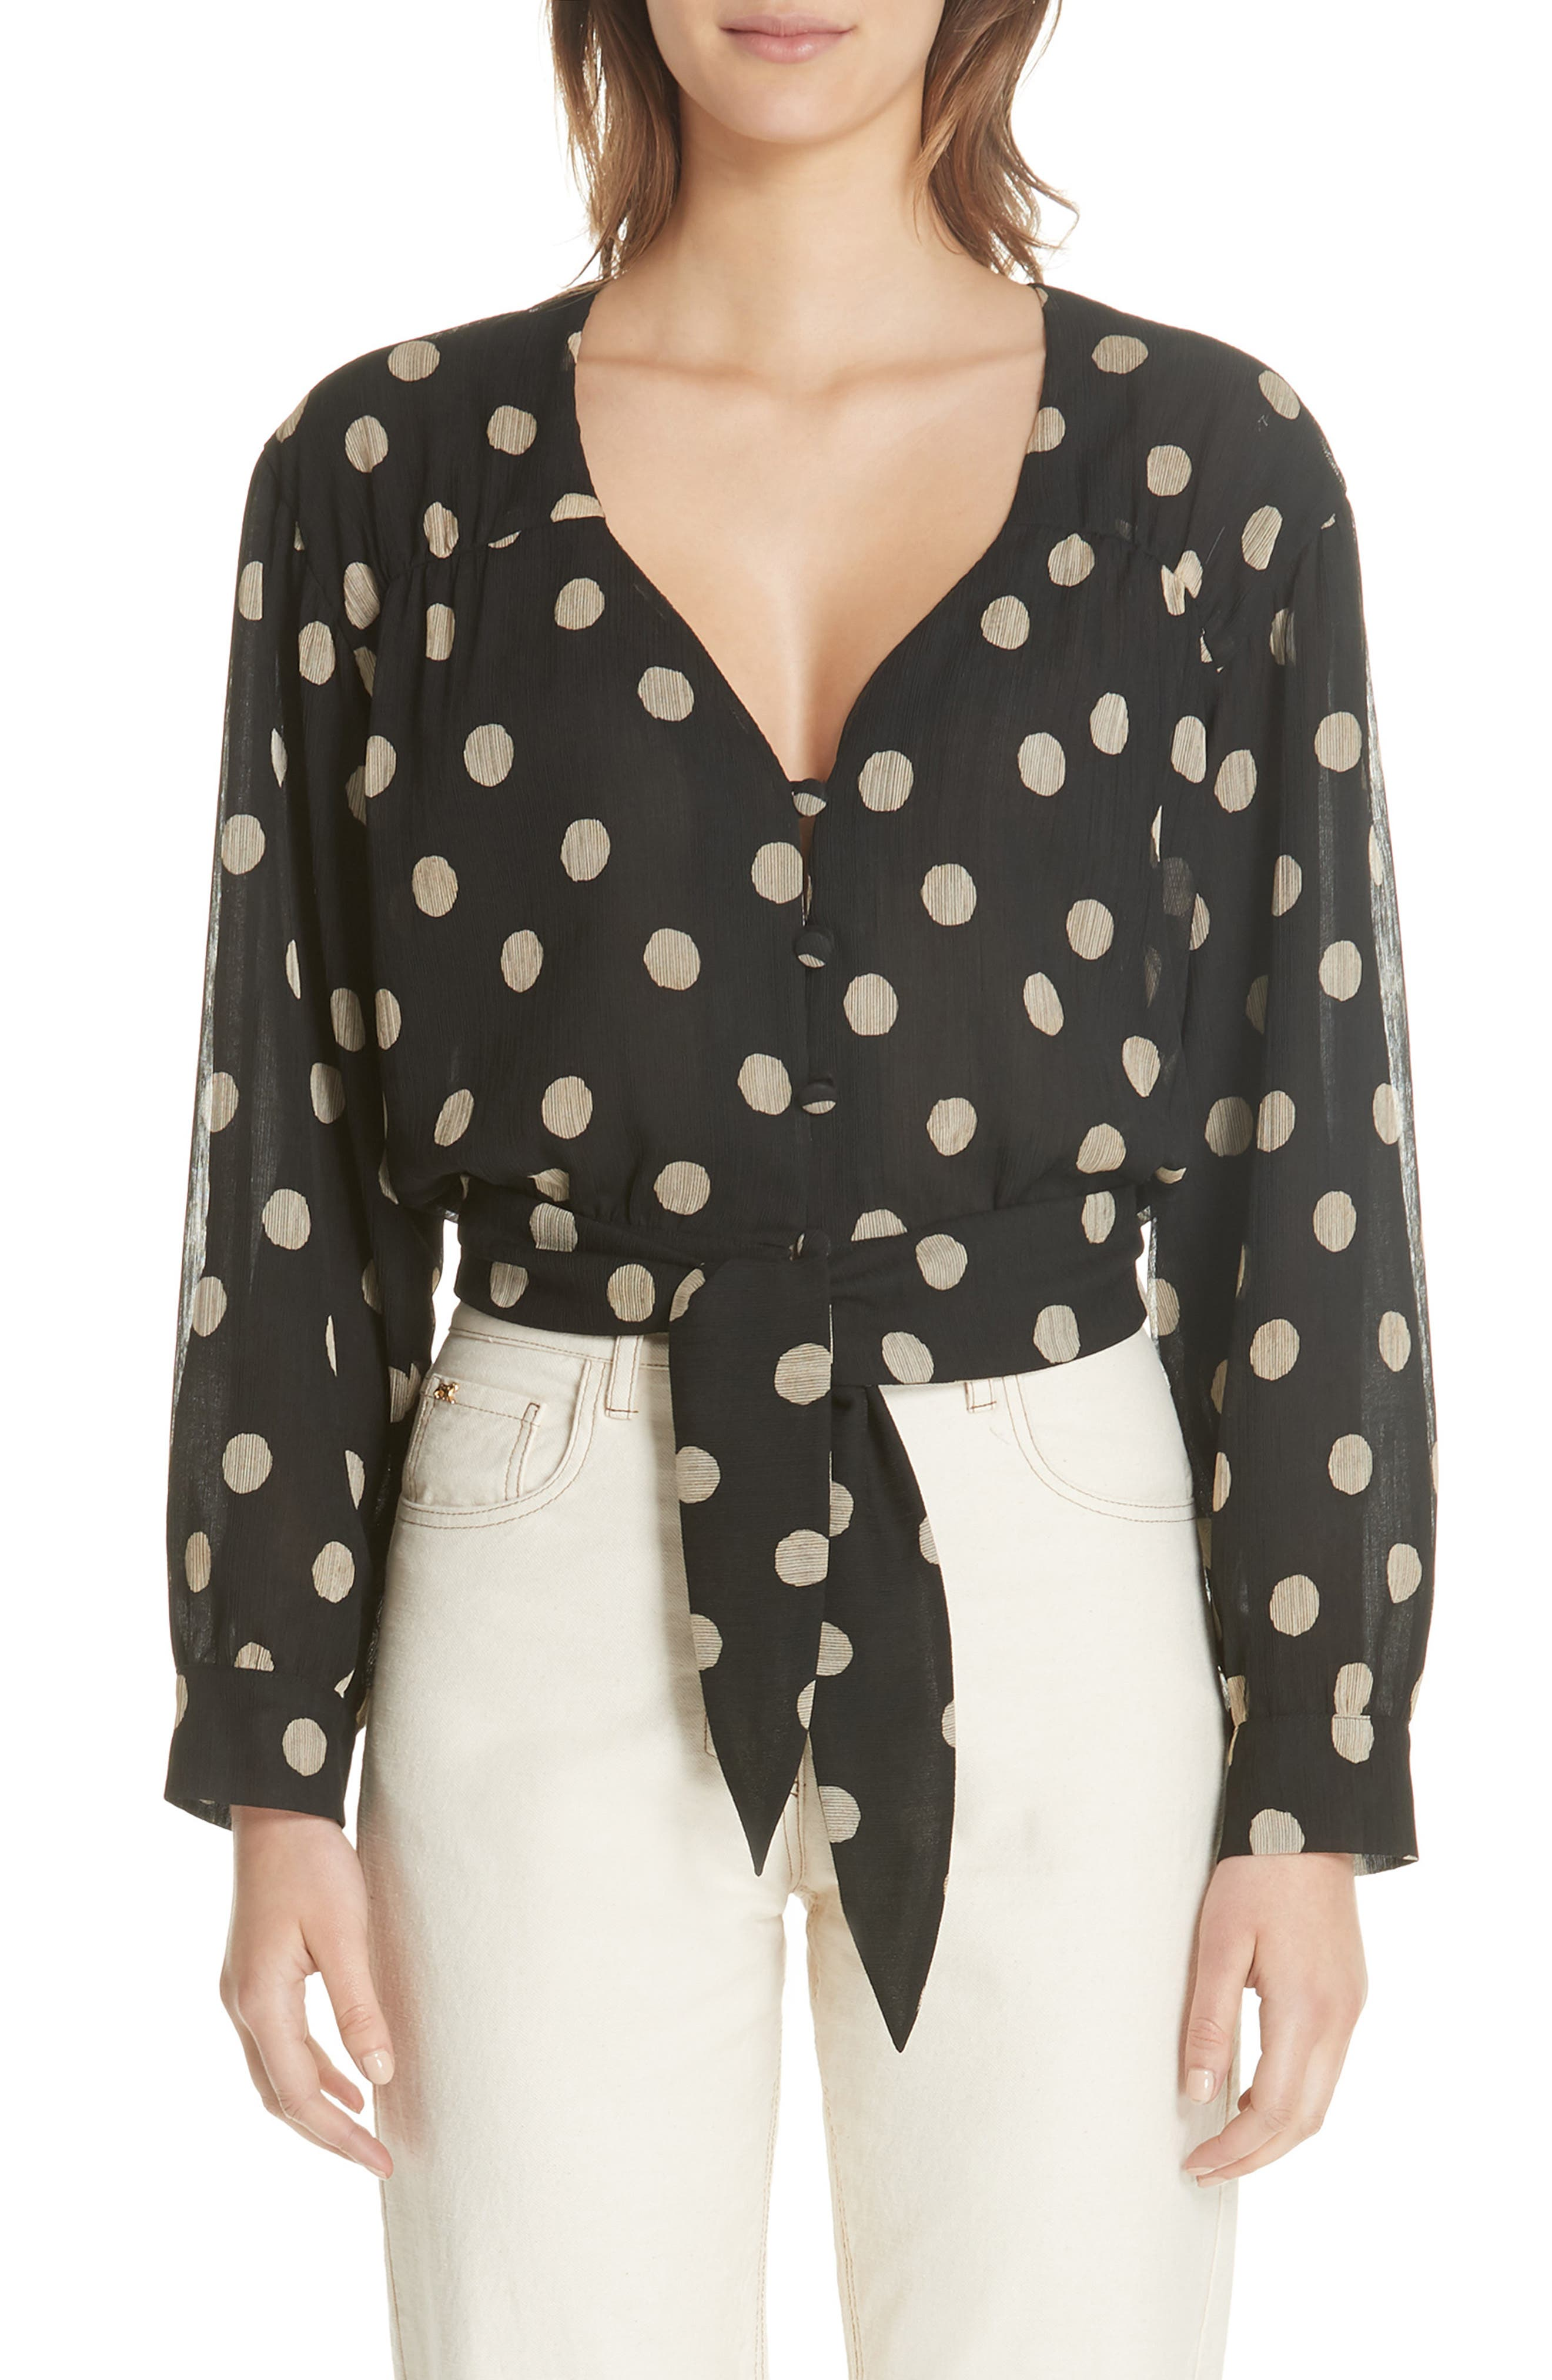 Amulet Polka Dot Tech Chiffon Blouse,                         Main,                         color, Polka Dot